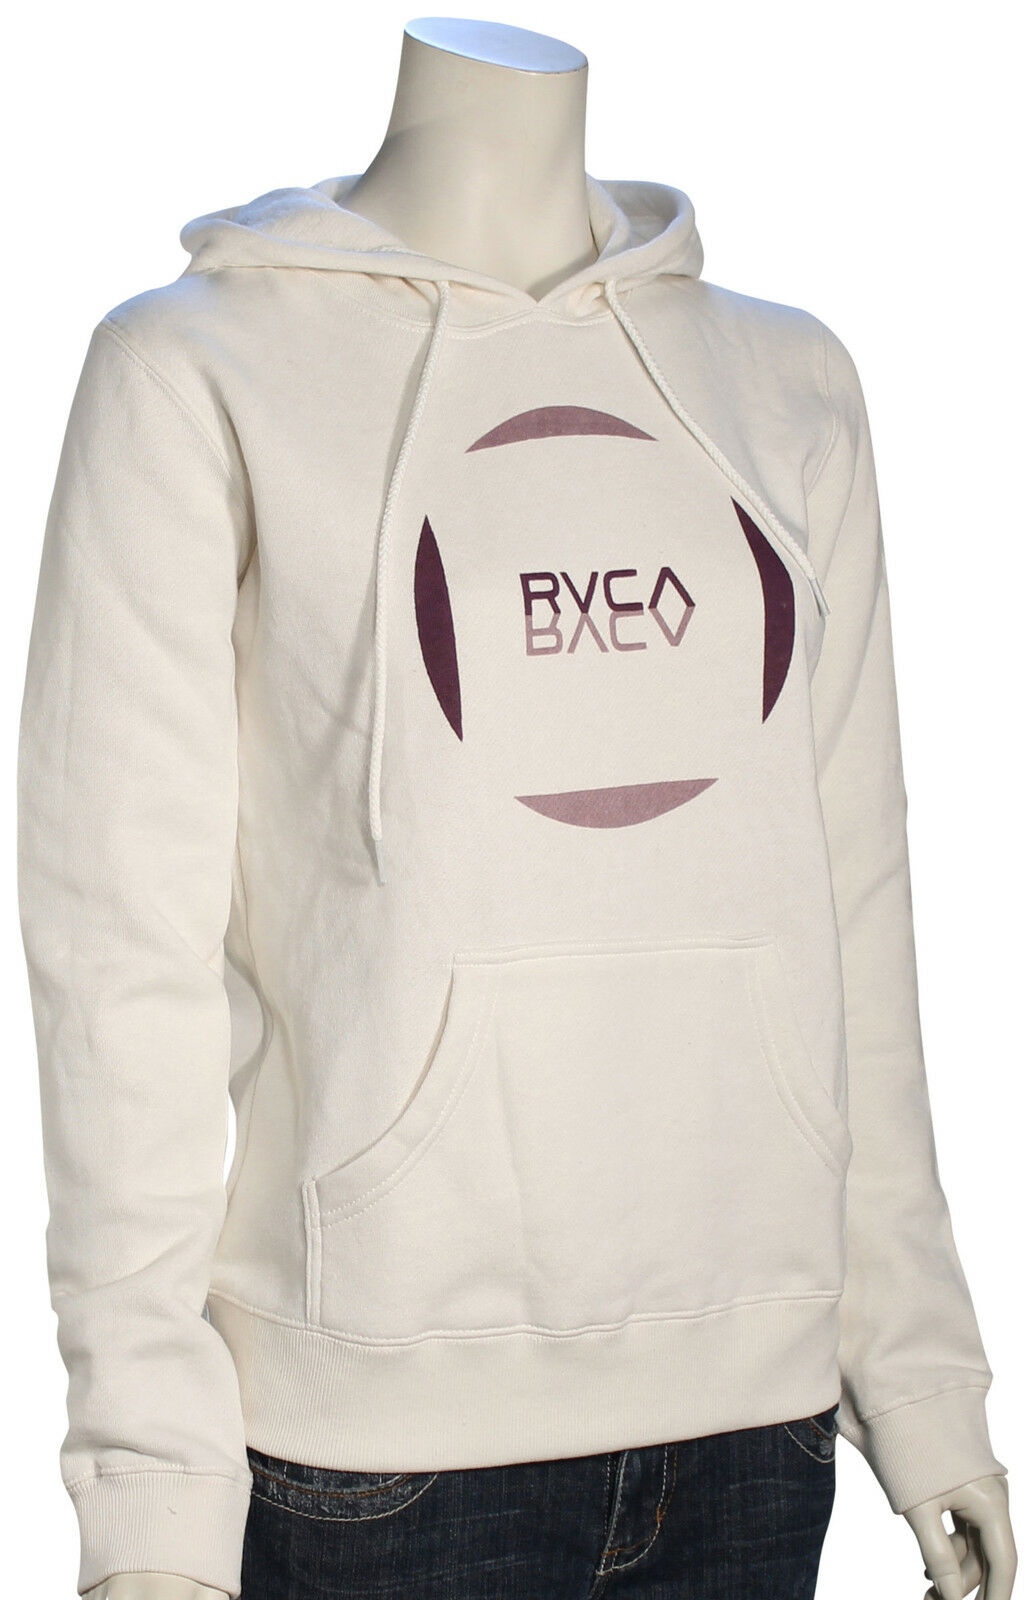 RVCA Reflect Women's Hoody - Vintage White - New